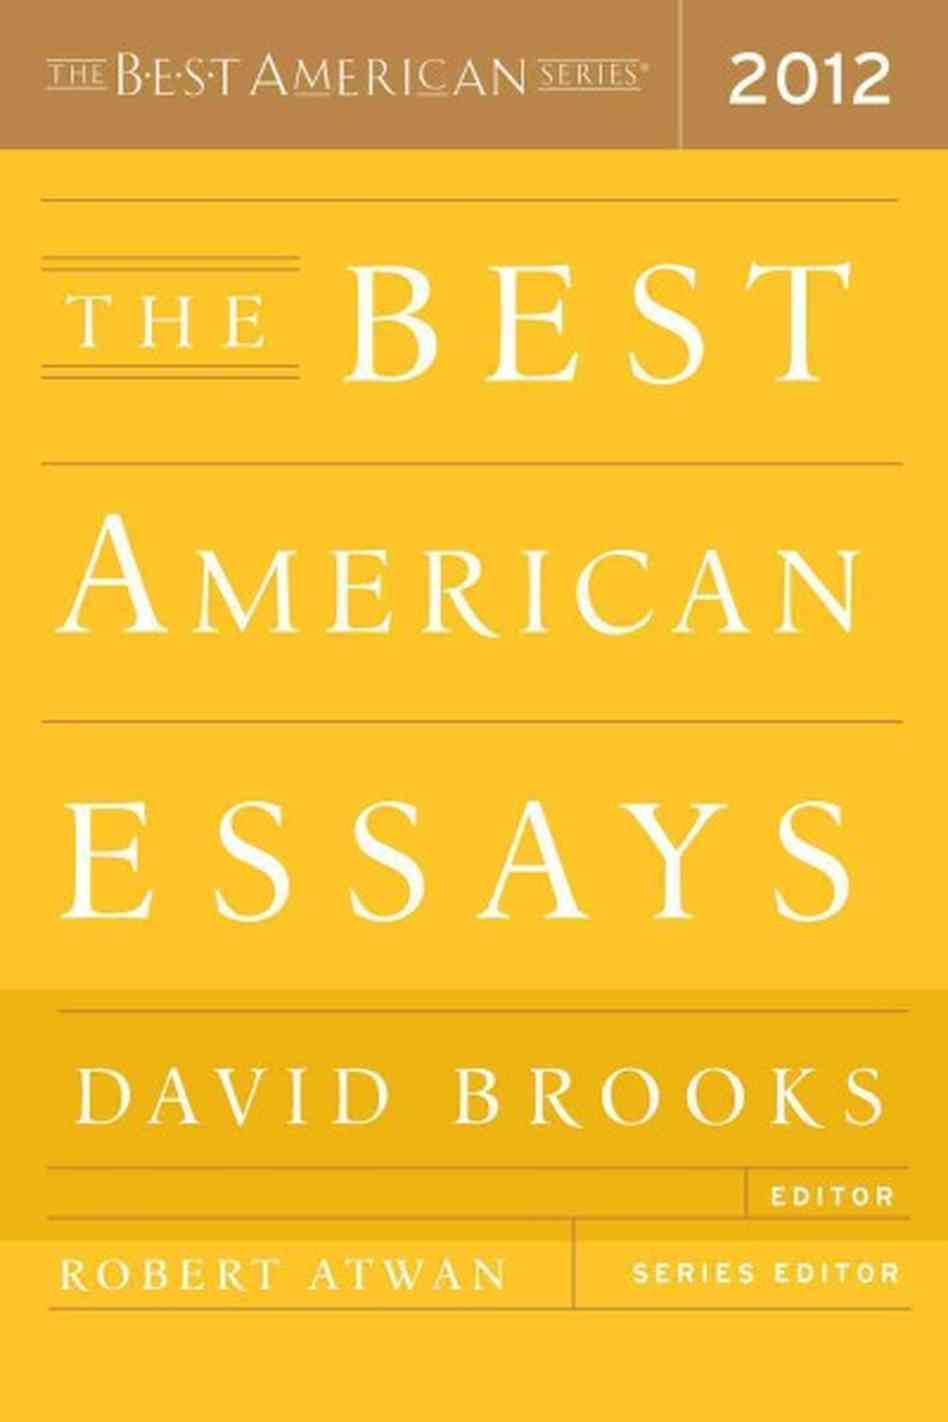 012 The Best American Essays 2012 Essay Wonderful Of Century Table Contents 2013 Pdf Download Full